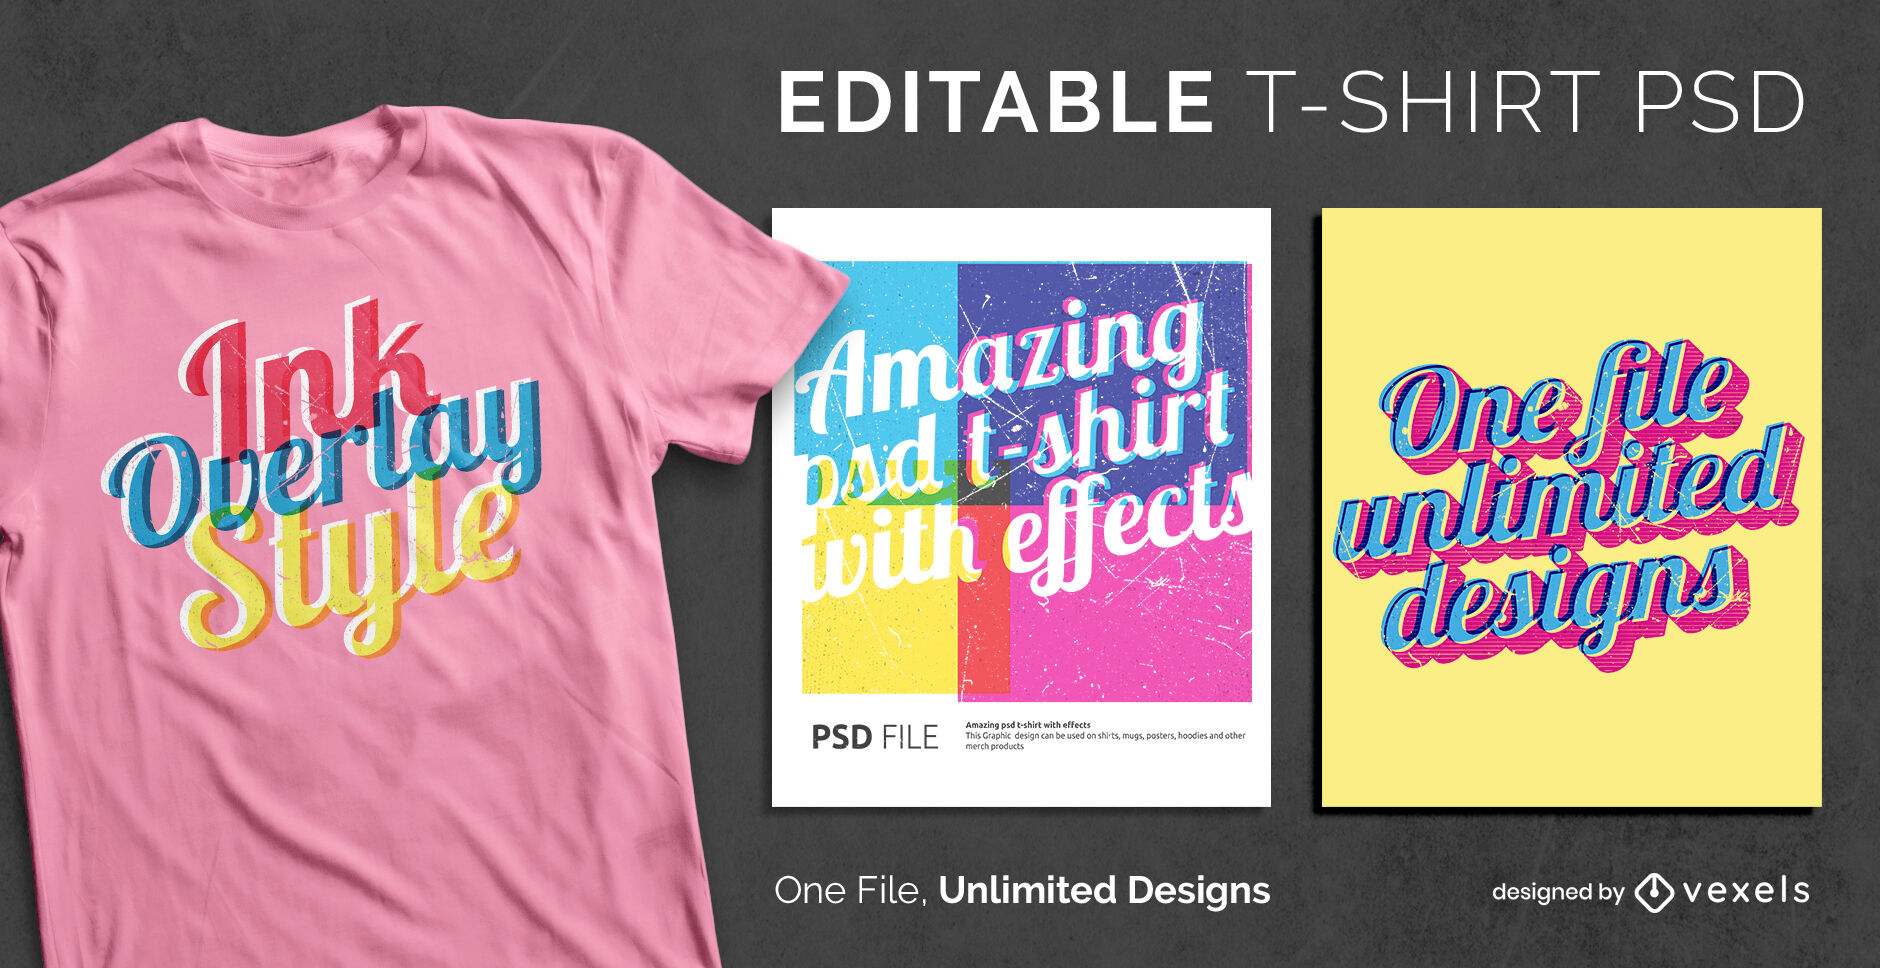 Ink overlay effect scalable psd t-shirt template